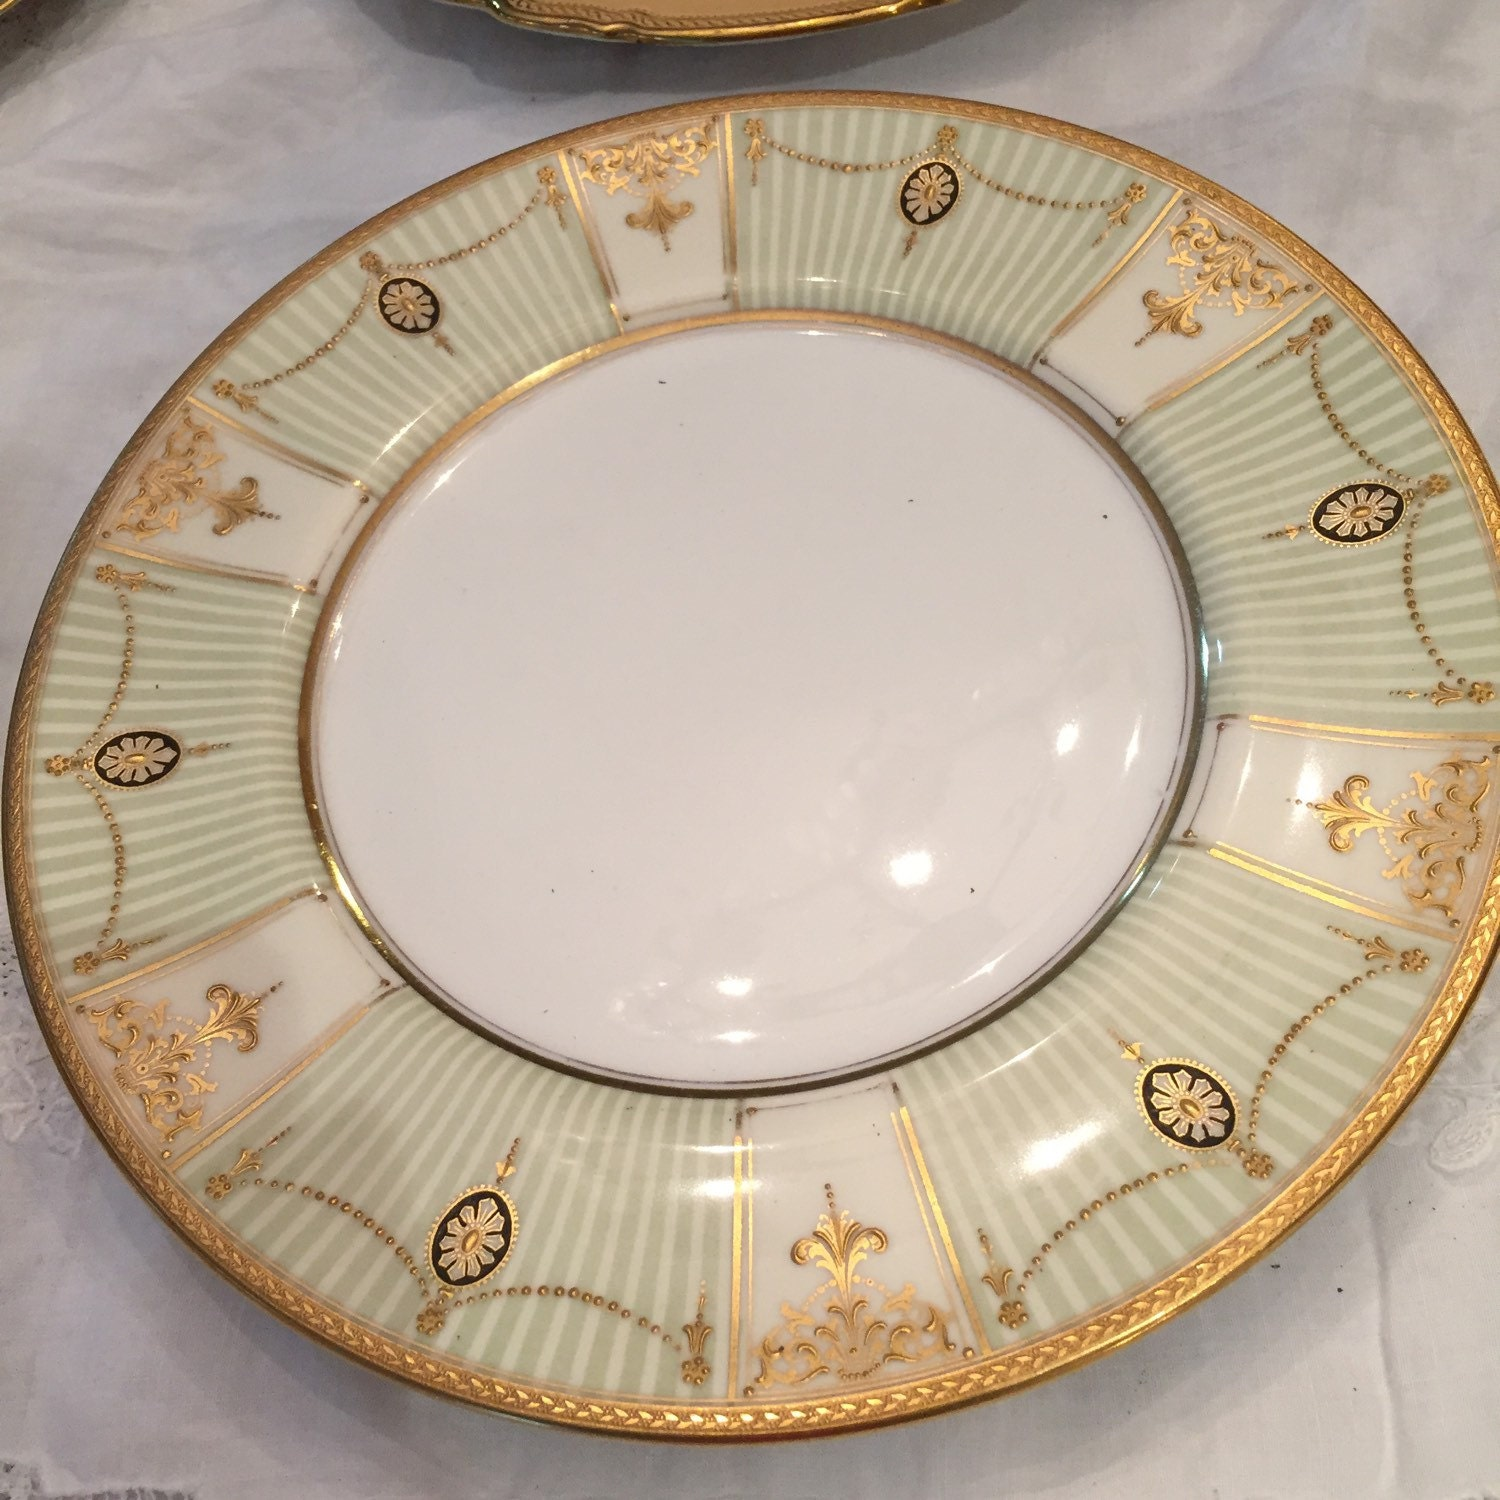 Antique Plates/Royal Doulton/5 Dinner Plates/Neo Classical/Green  Stripes/22Kt Raised Gold Embellishments/ Circa 1914 /Display / Wedding Gift